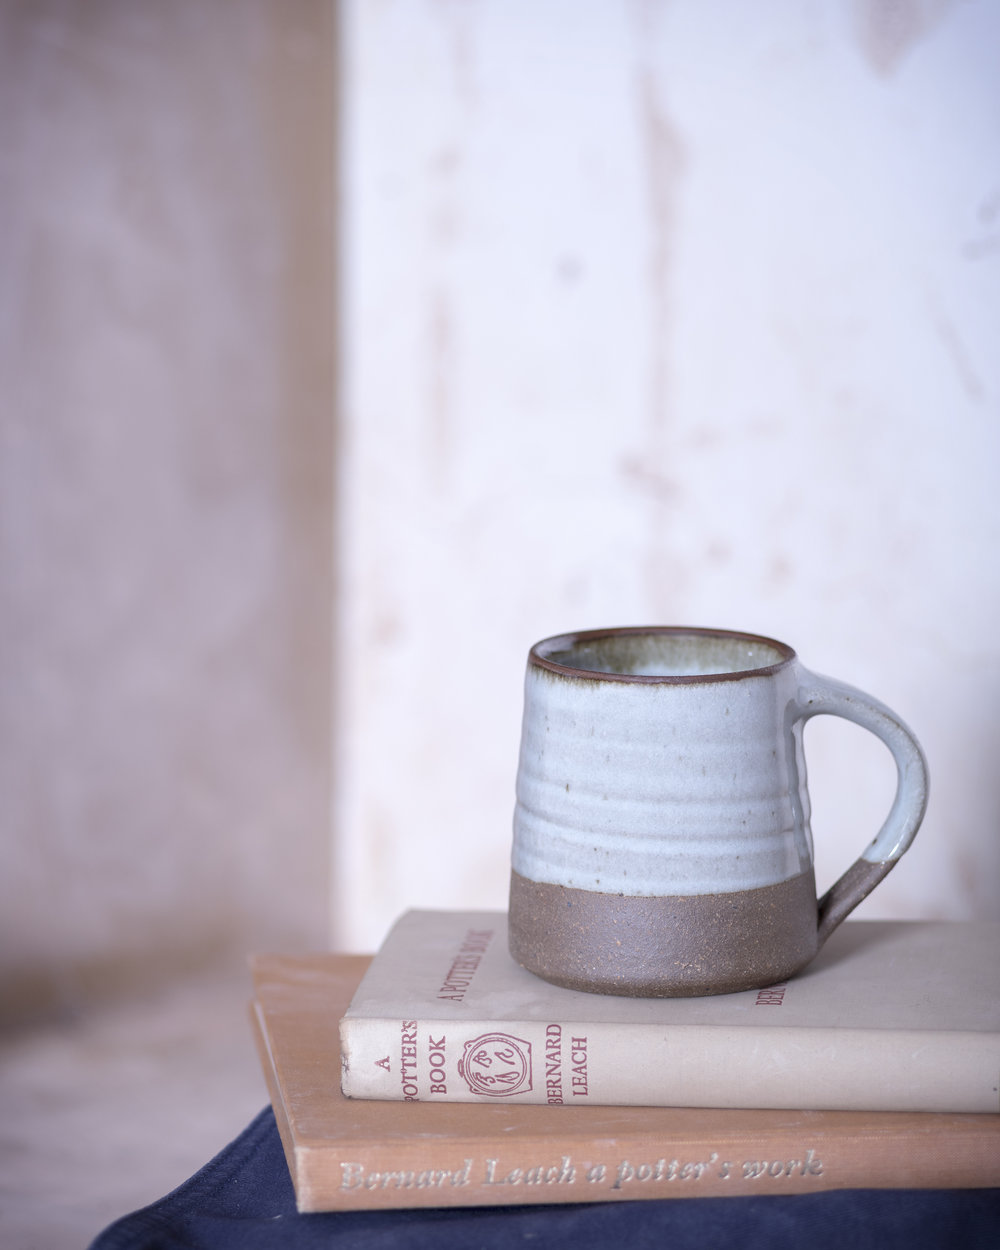 Leach-Pottery_Retail-Image_Batch-1_Photo-Matthew-Tyas-Copyright-2018_9.jpg